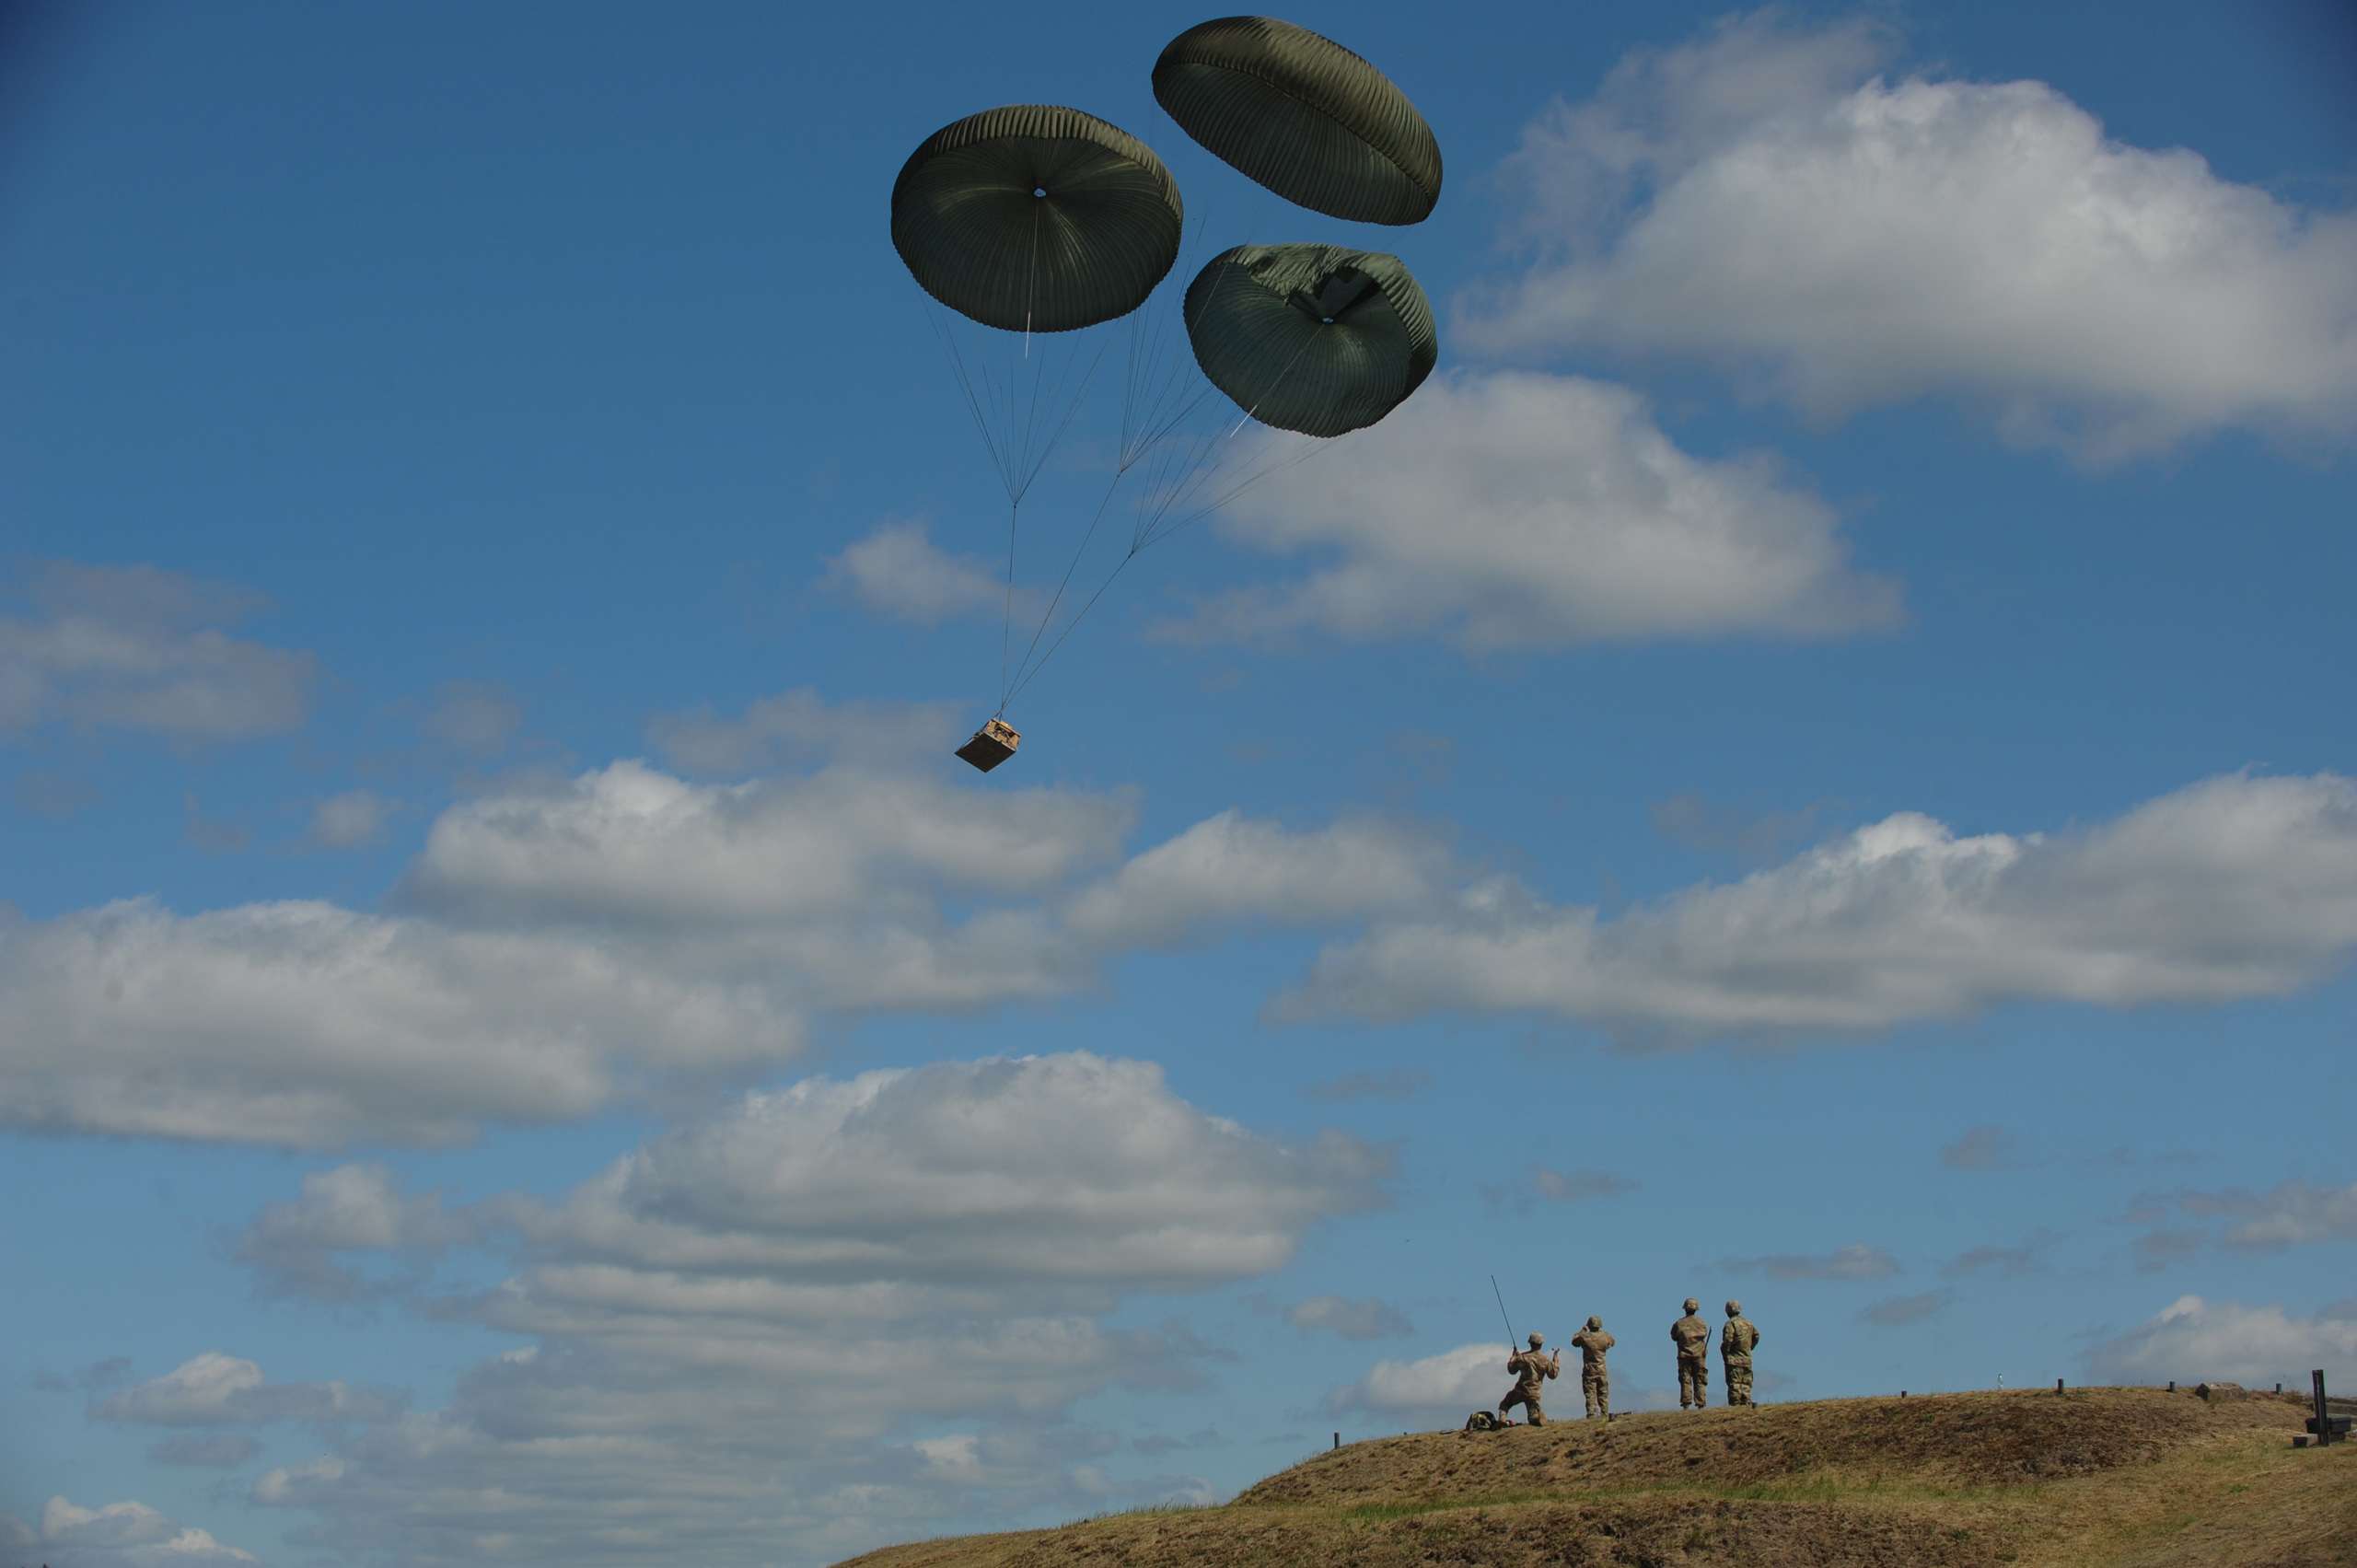 American soldiers from the Fourth of the 319th Airborne Field Artillery Regiment of the 173rd Infantry Brigade Combat Team monitor as a howitzer drops from a C-17 aircraft that took off from Nuremberg, Germany before American soldiers parachute to the ground at the Drawsko Pomorskie Training Area in Poland on June 15, 2015.